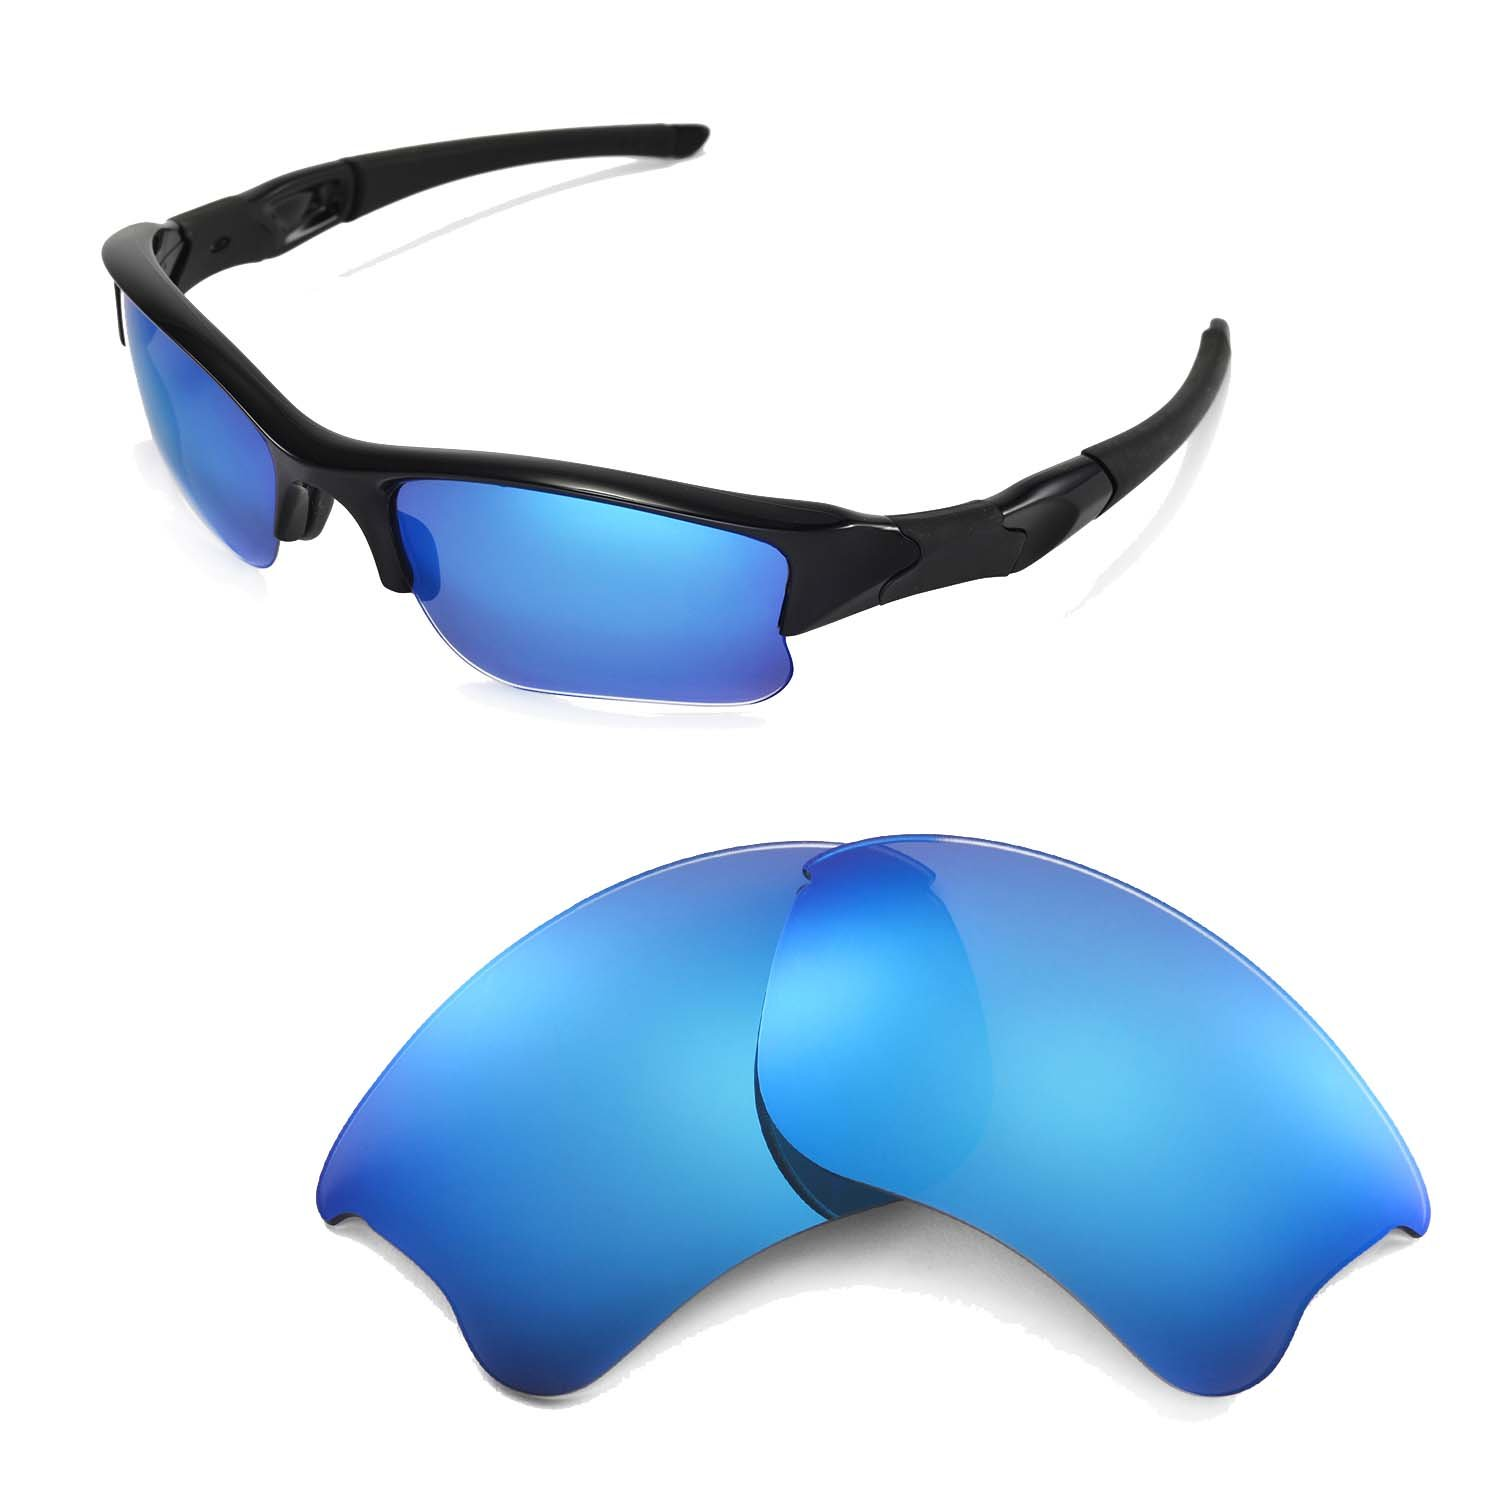 Walleva Replacement Lenses for Oakley Flak Jacket XLJ Sunglasses - Multiple Options Available (Ice Blue Coated - Polarized) by Walleva